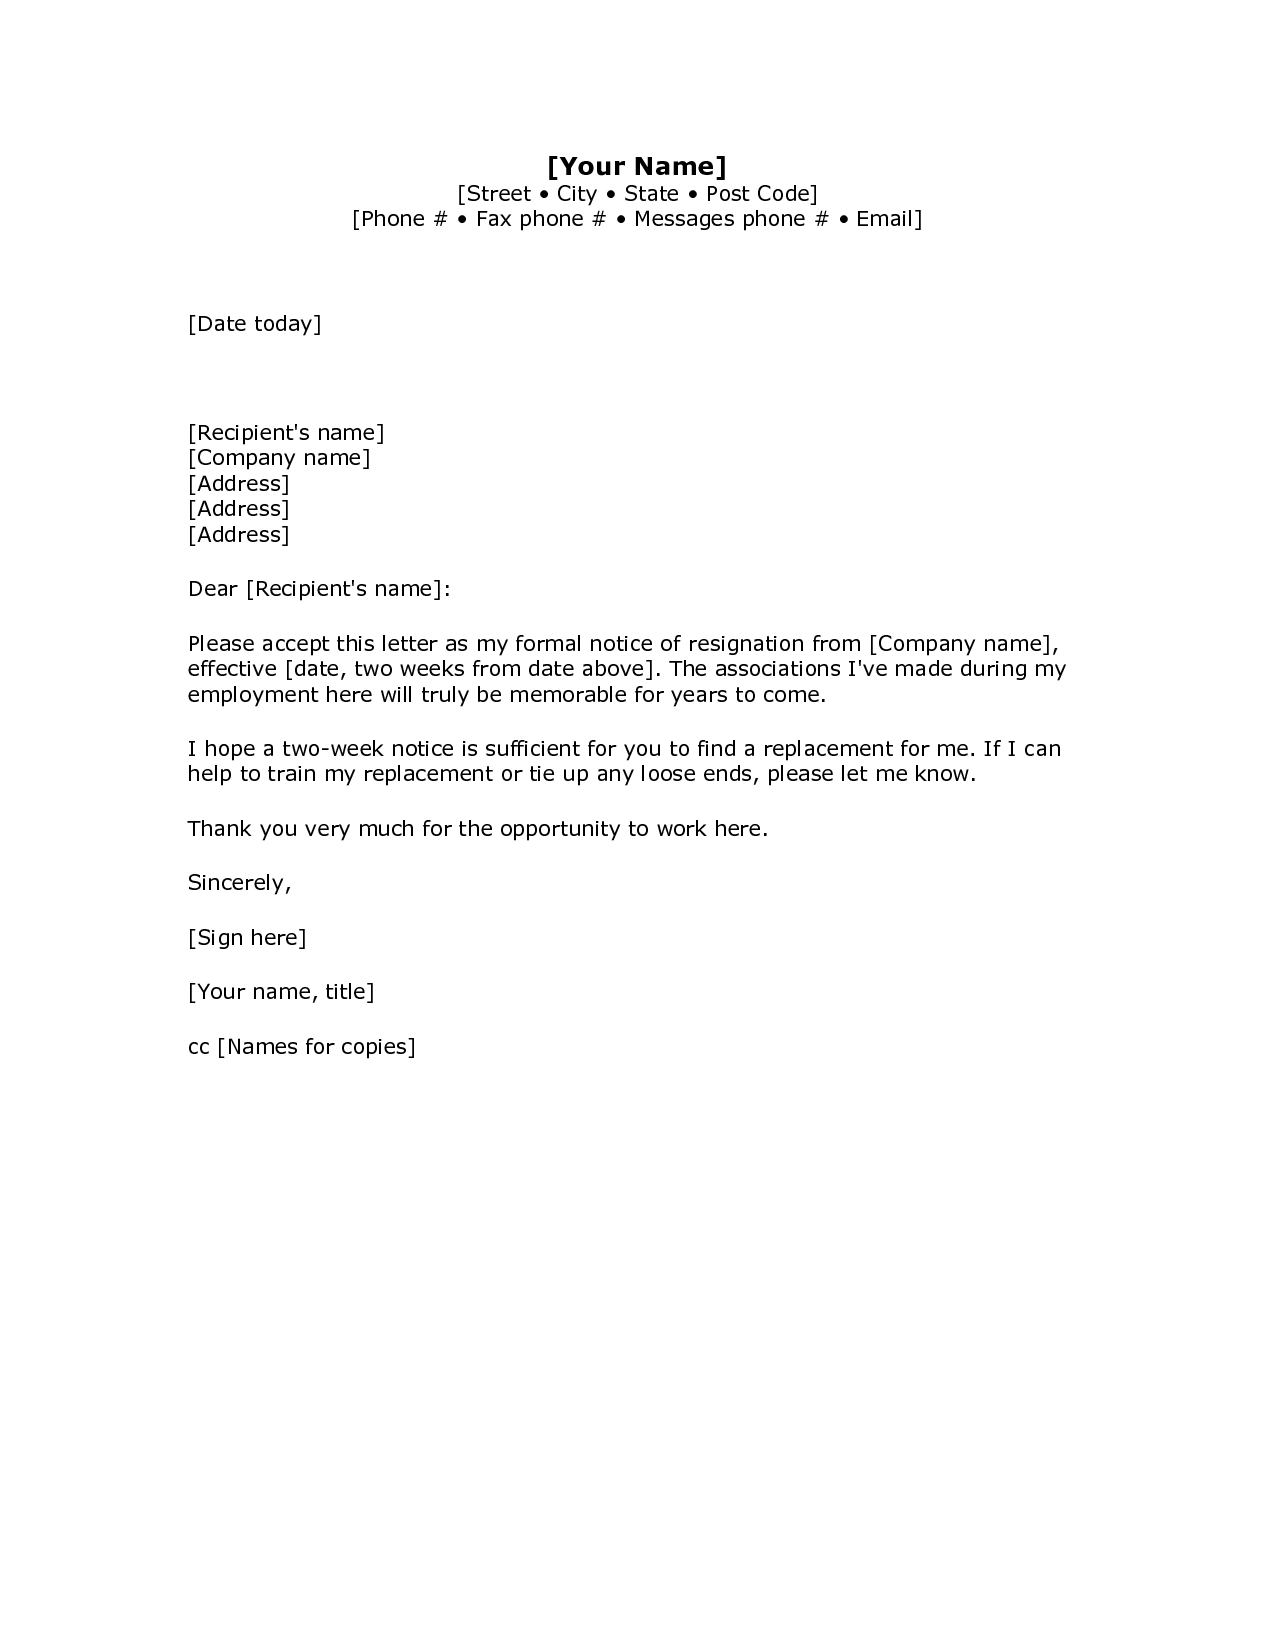 relieving letter template example-2 Weeks Notice Letter Resignation Letter Week Notice Words HDWriting A Letter Resignation Email Letter Sample 1-h